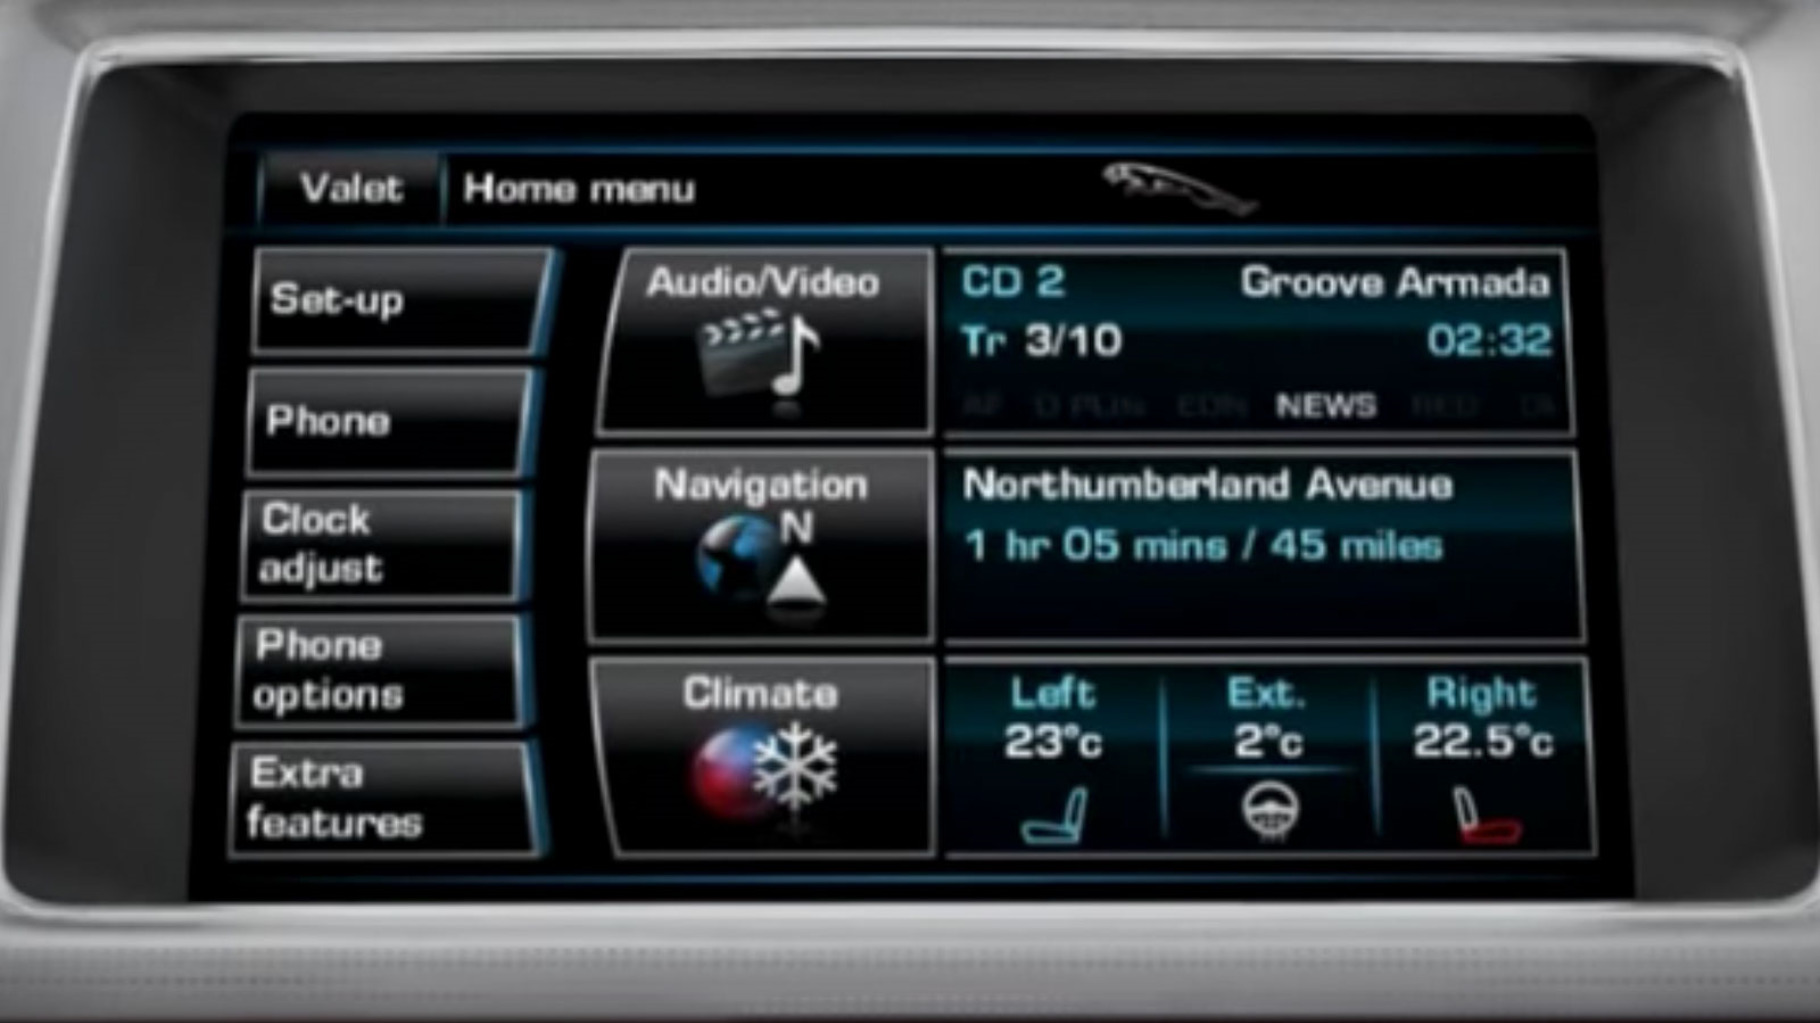 Jaguar XF 2012 Touchscreen Display